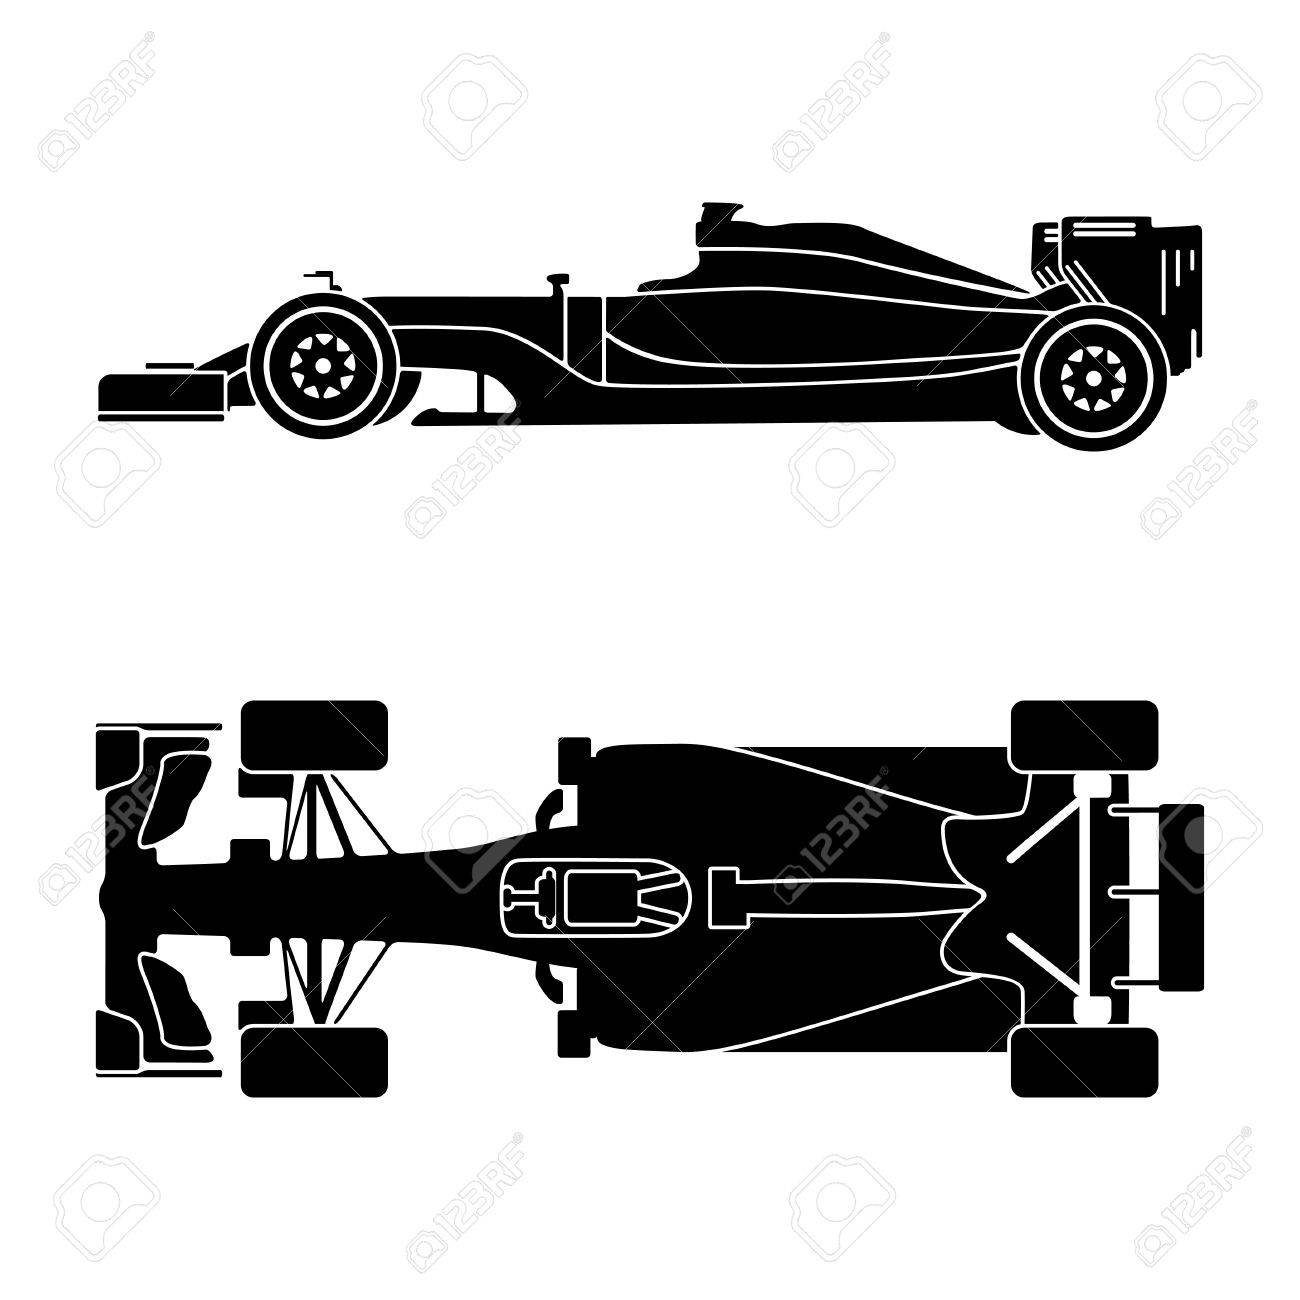 Silhouette Of A Racing Car Isolated On White Background Top